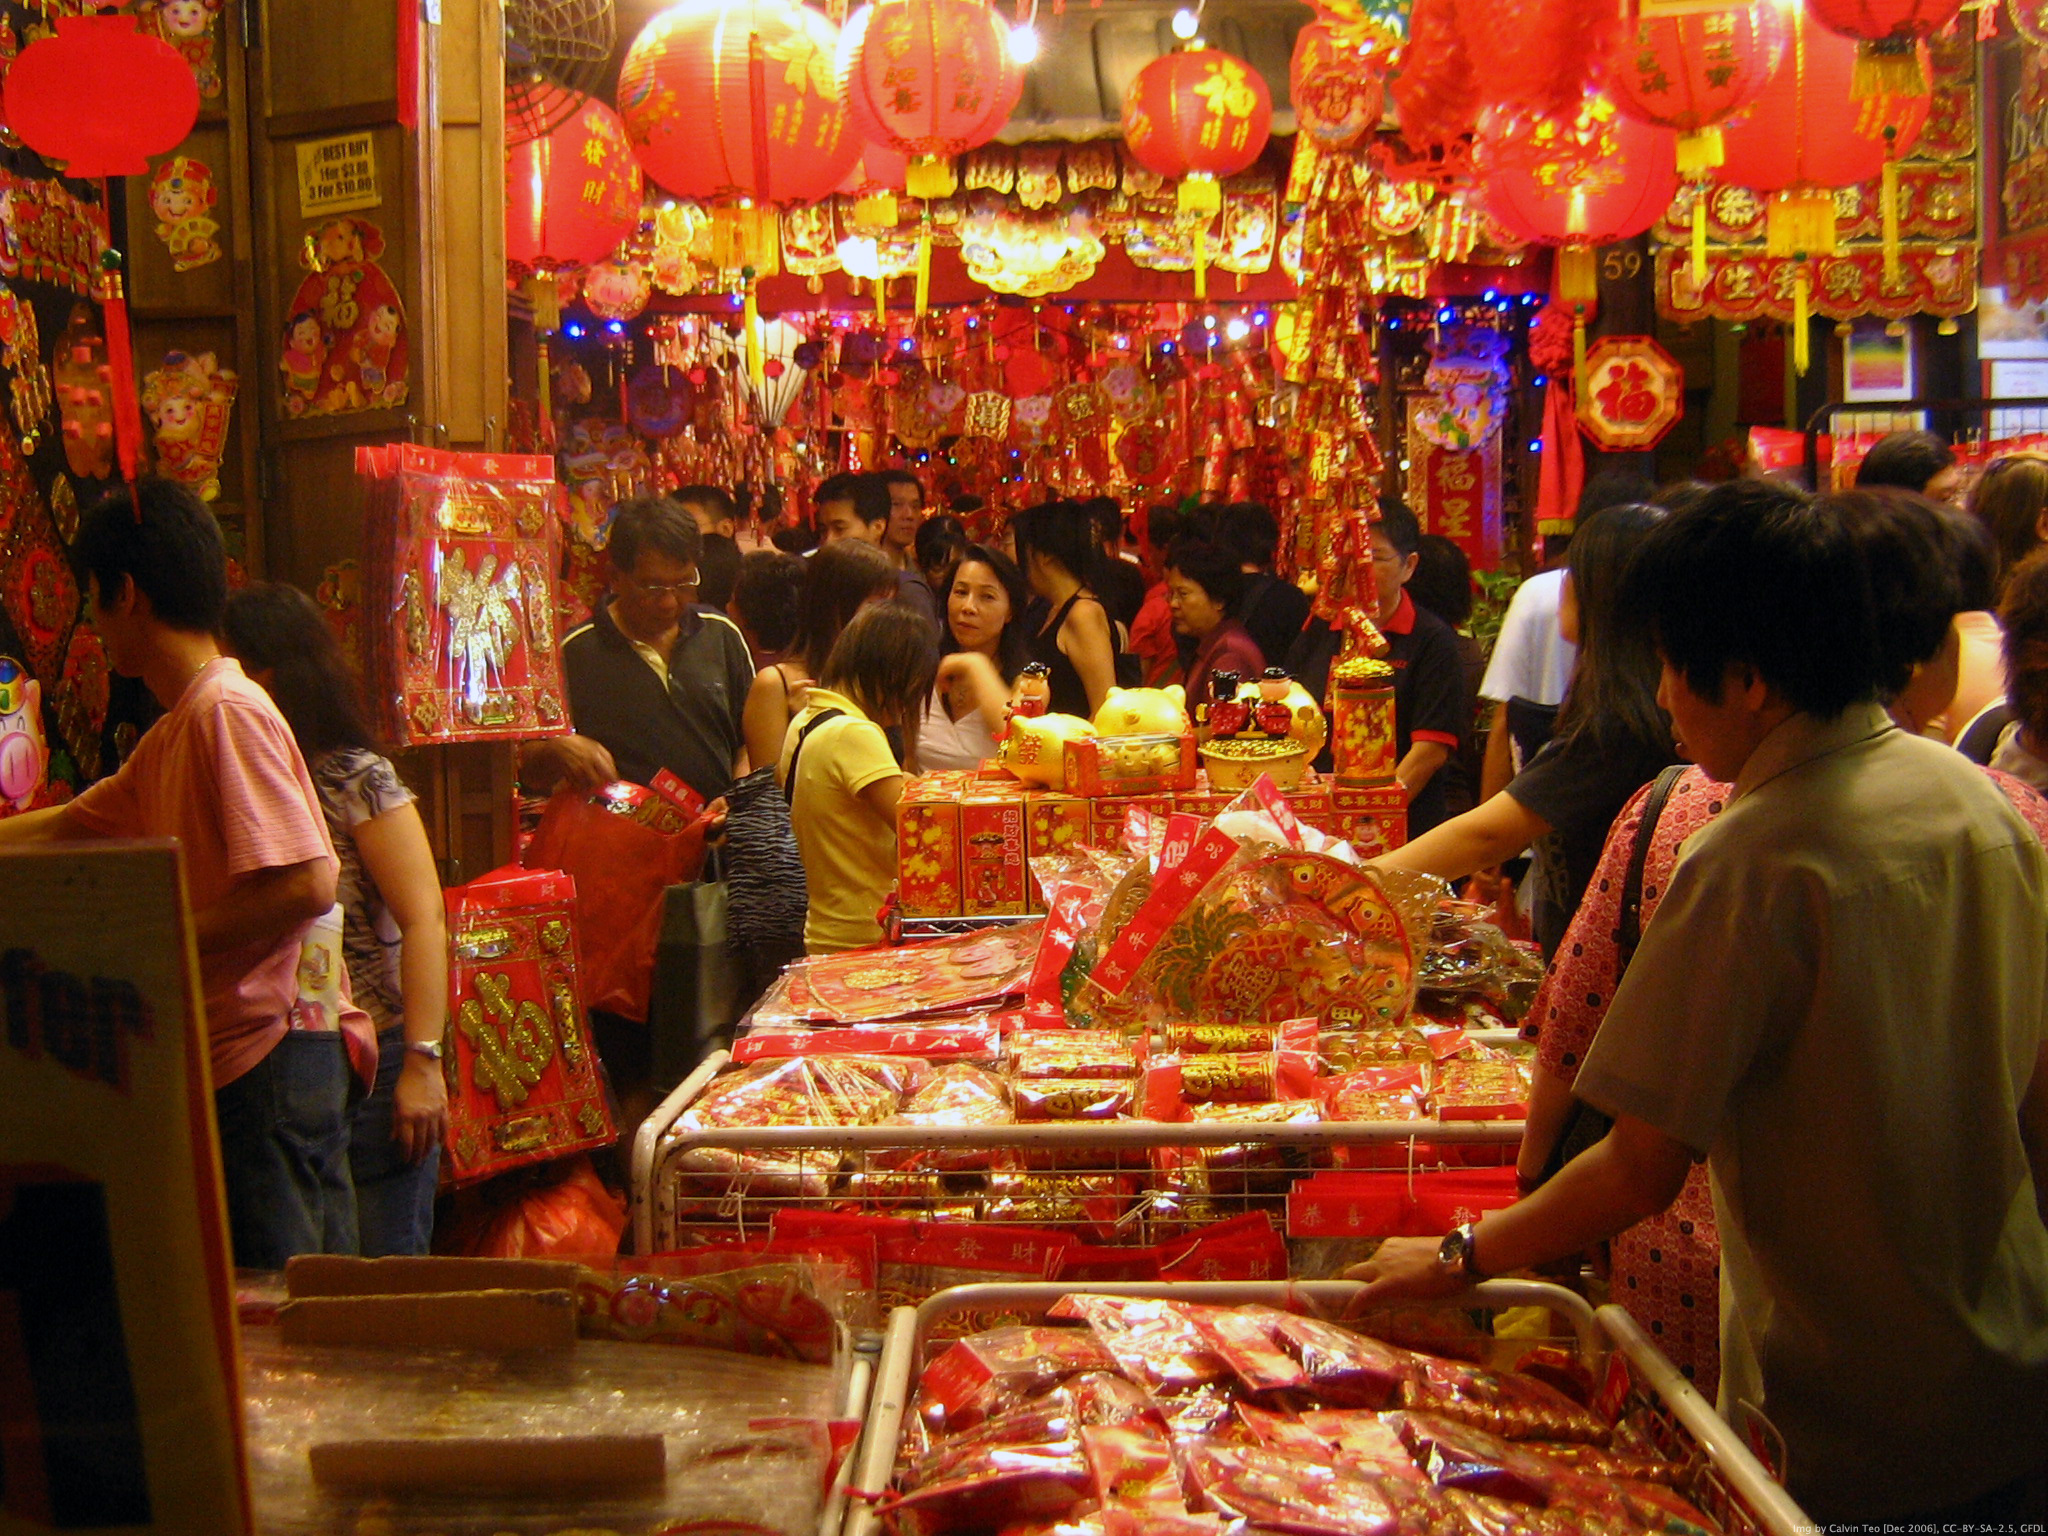 A scene in a street market in Chinatown, Singapore, during the Chinese New Year holidays. Photo taken on February 3, 2007.